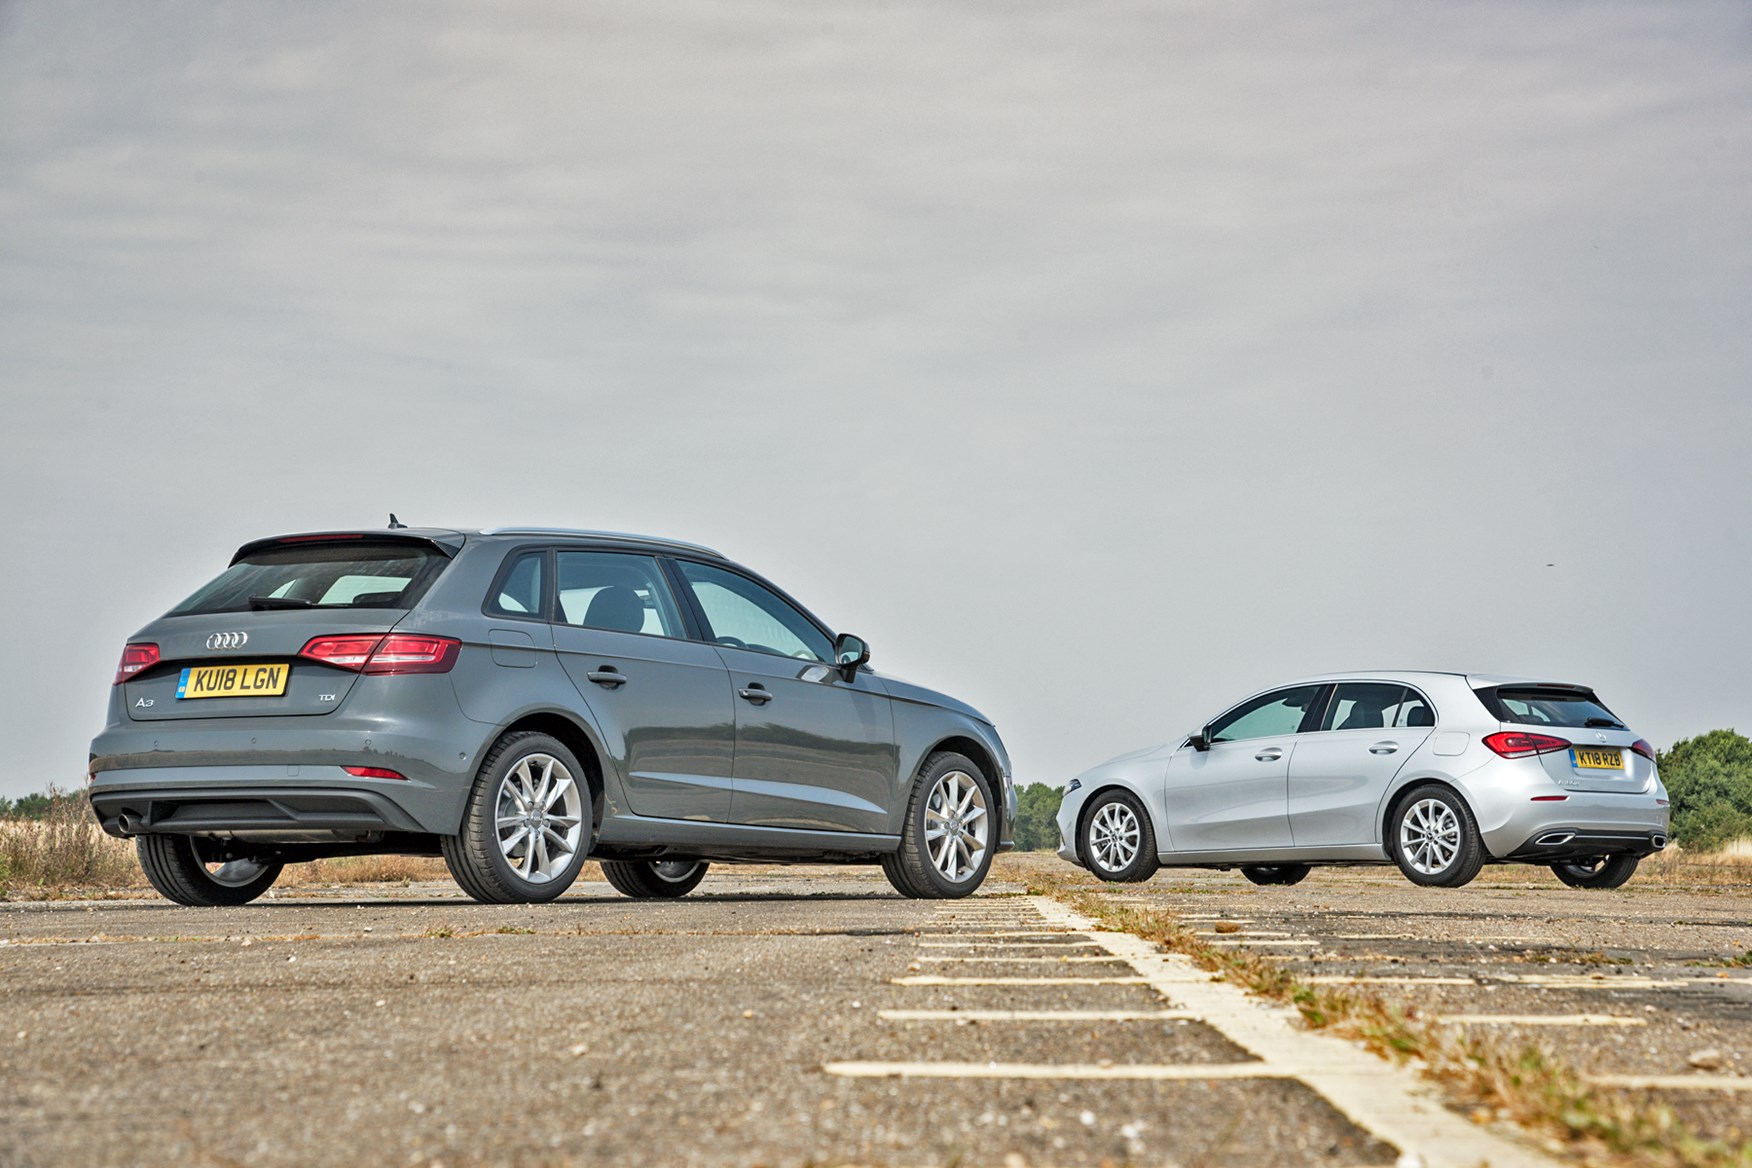 Audi A3 and Mercedes A-Class rear